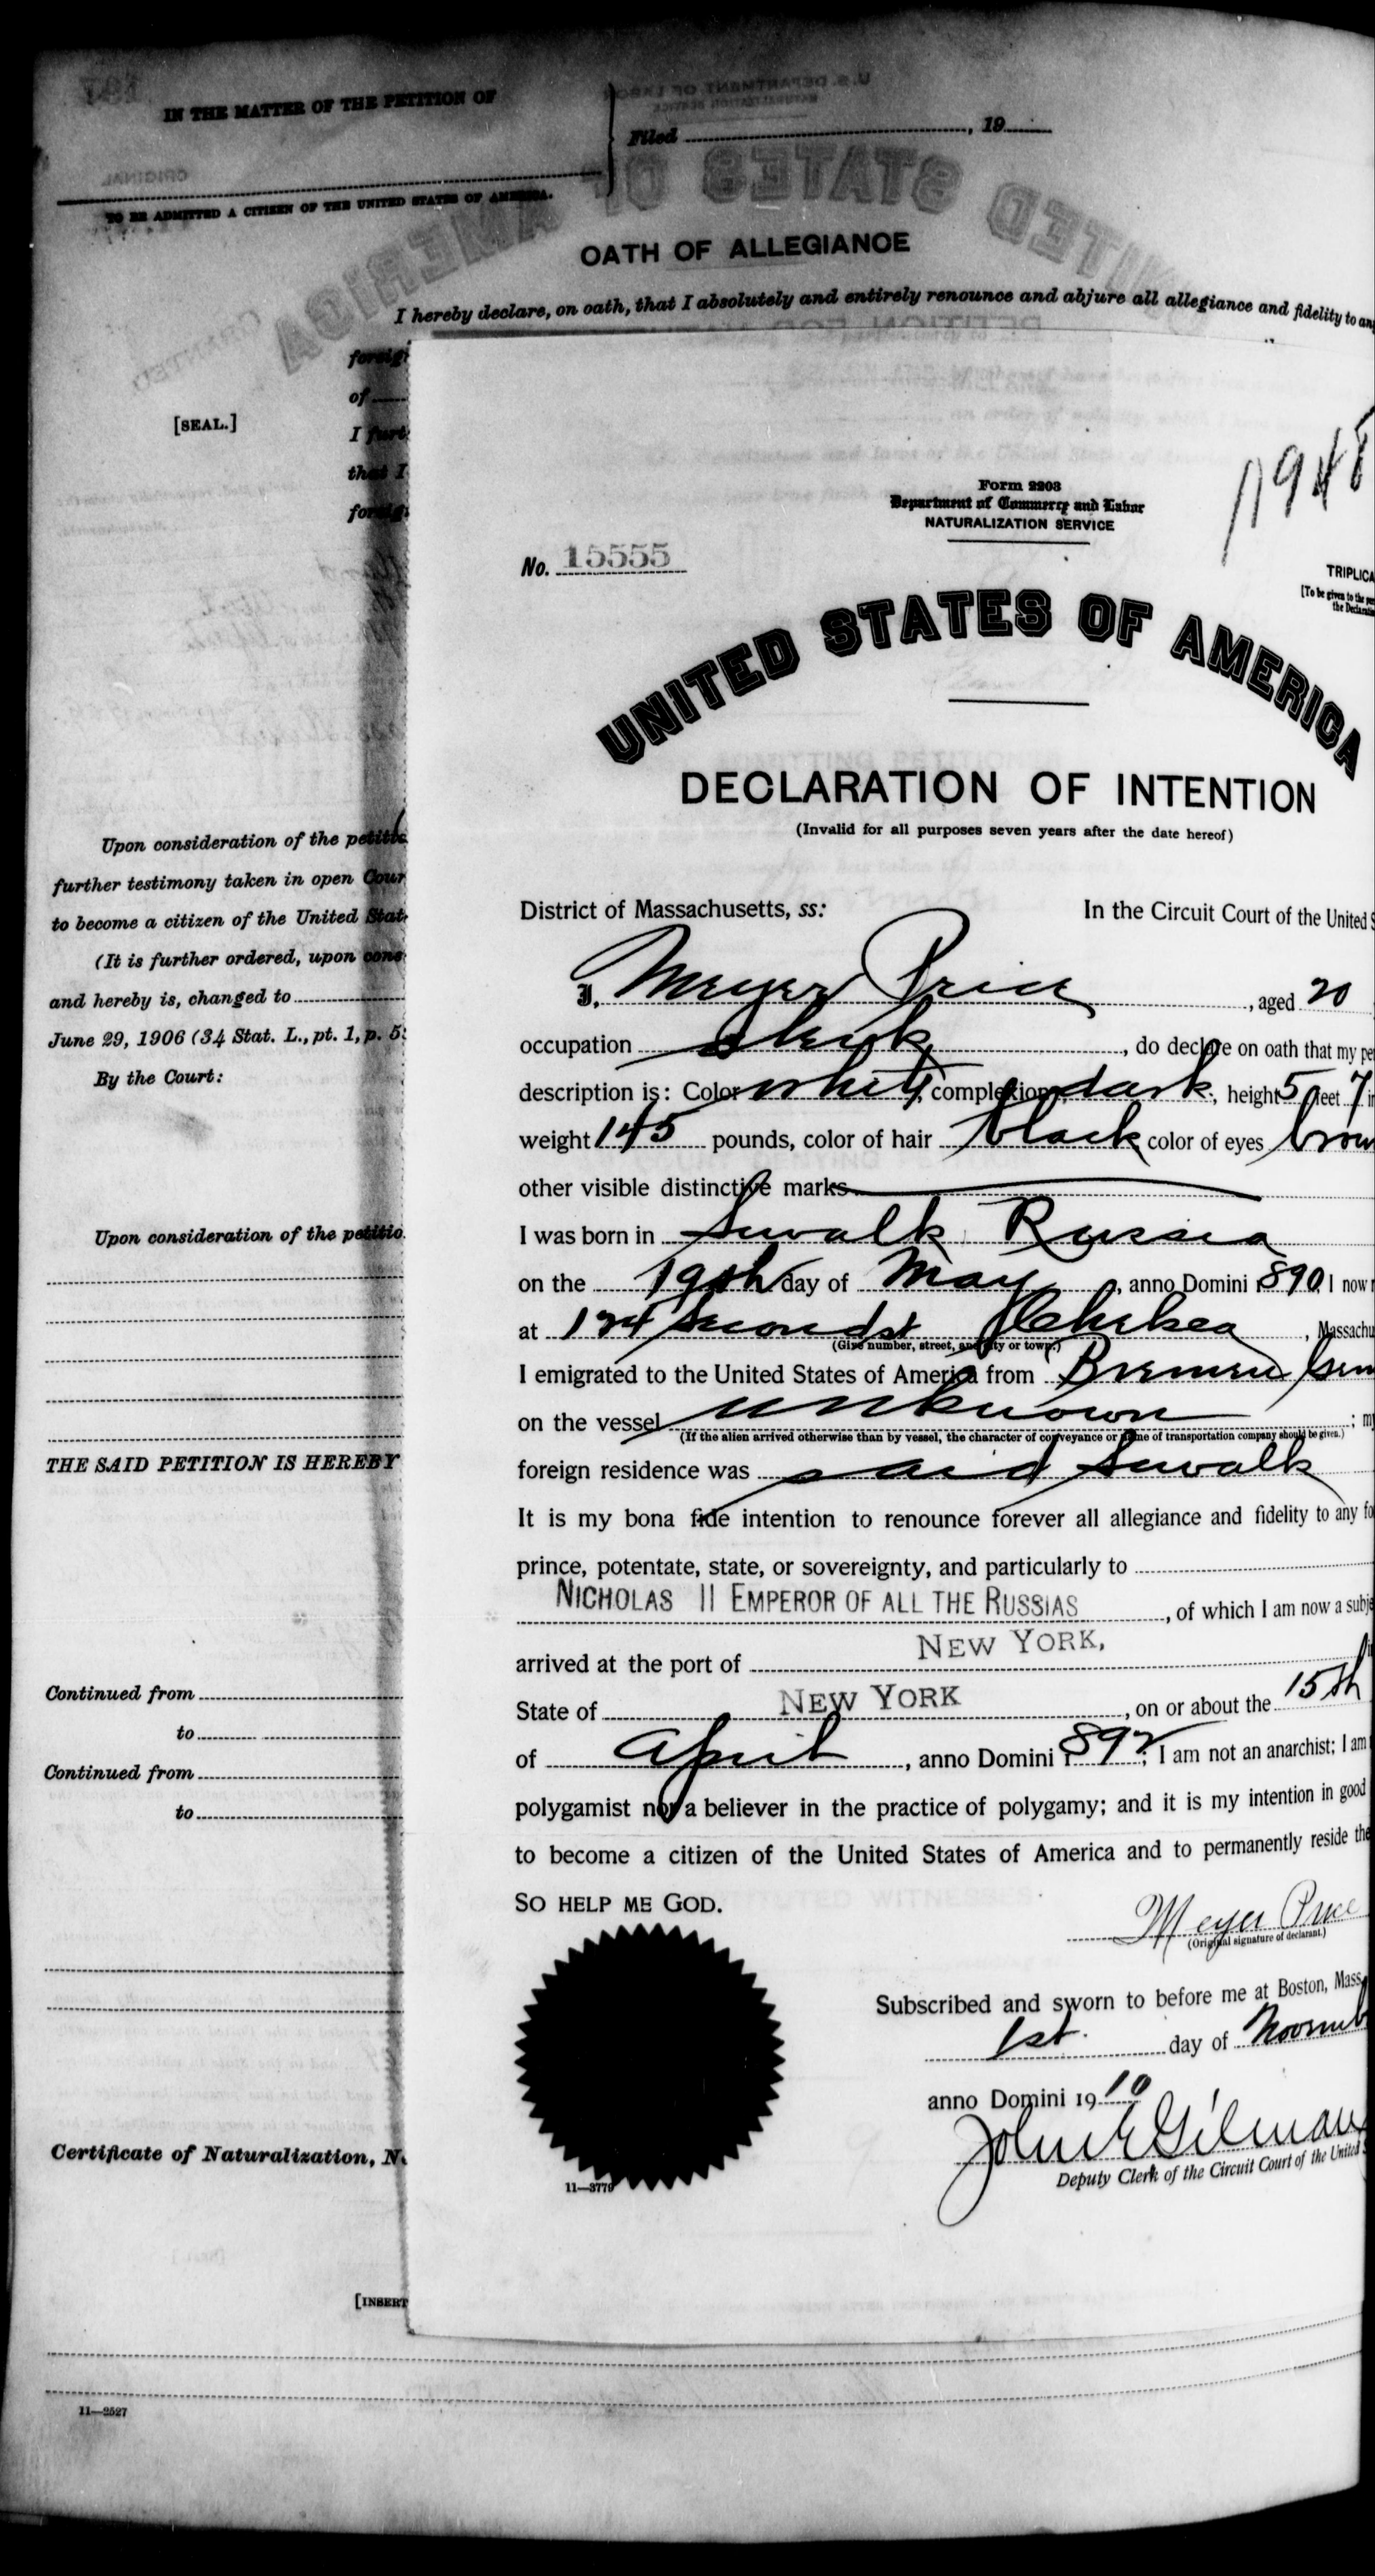 Petition for Naturalization of Meyer Price